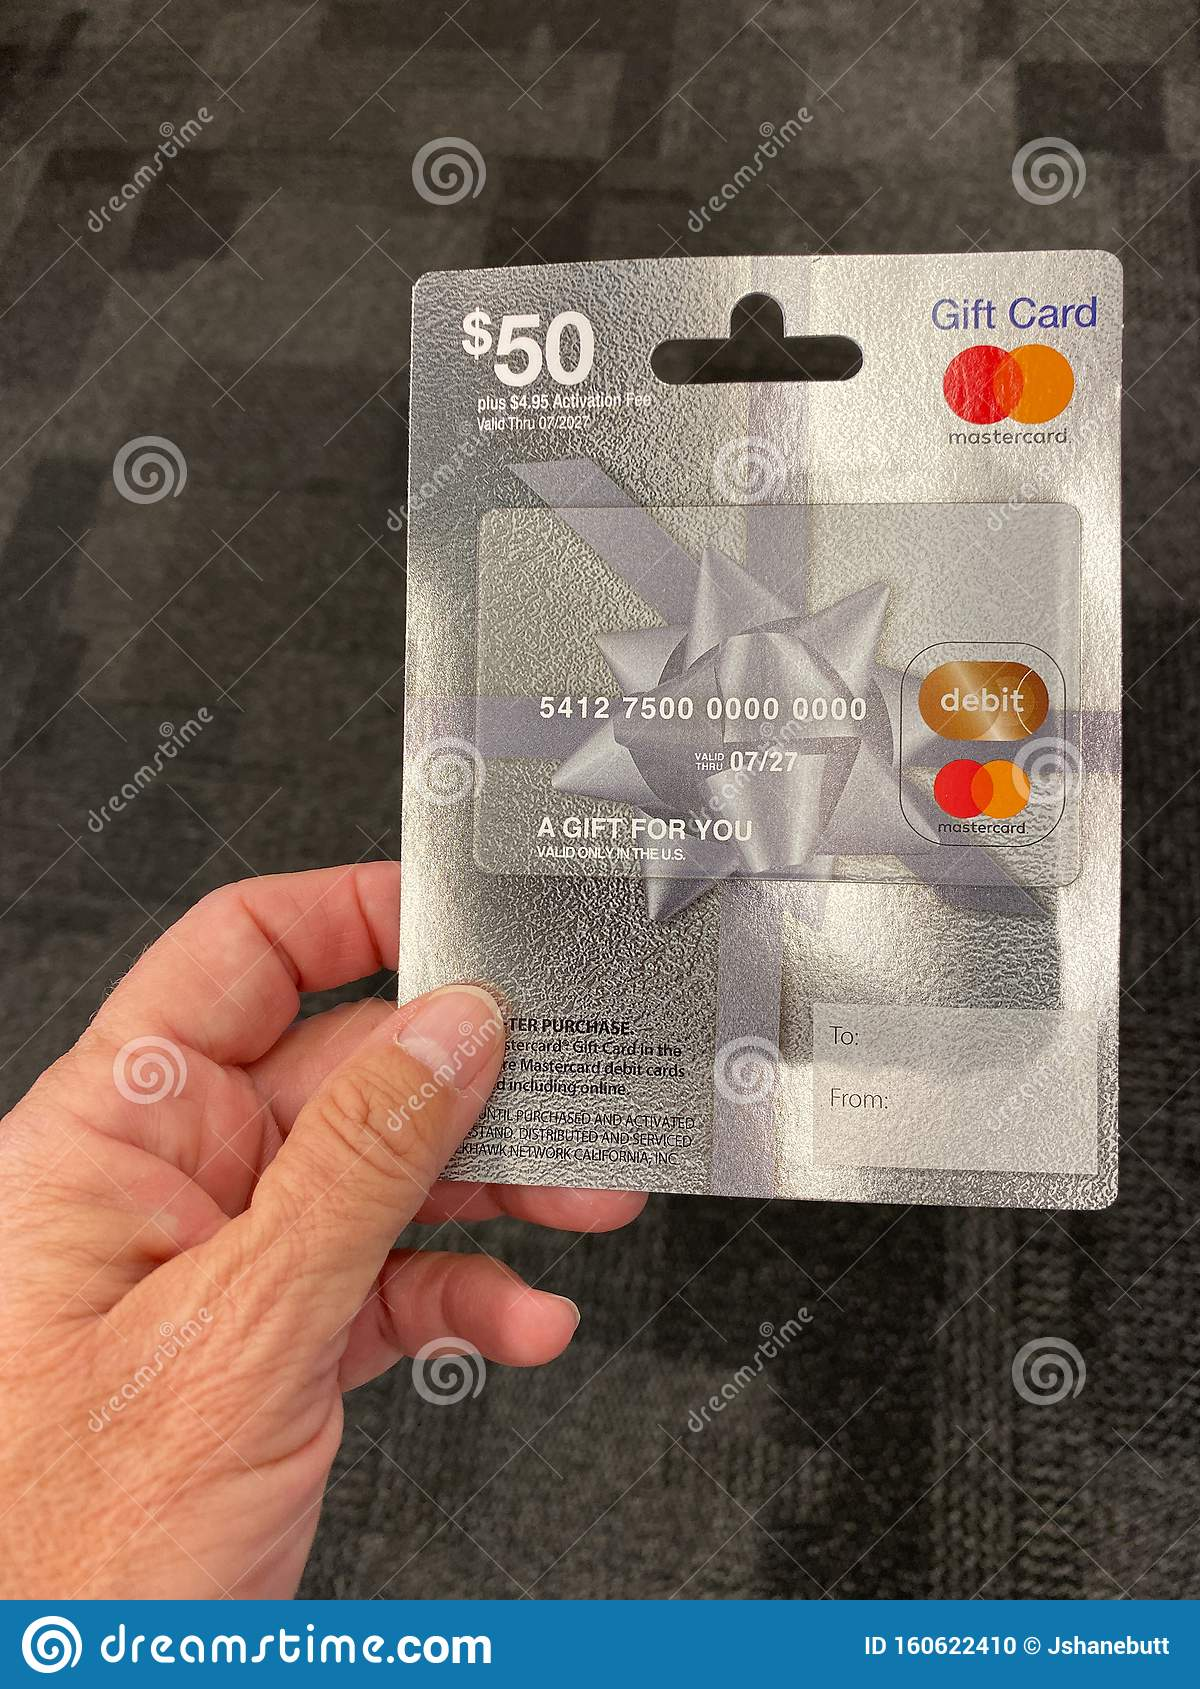 A Mastercard Gift Card Ready For A Person To Purchase Editorial Image Image Of Easy Birthday 160622410